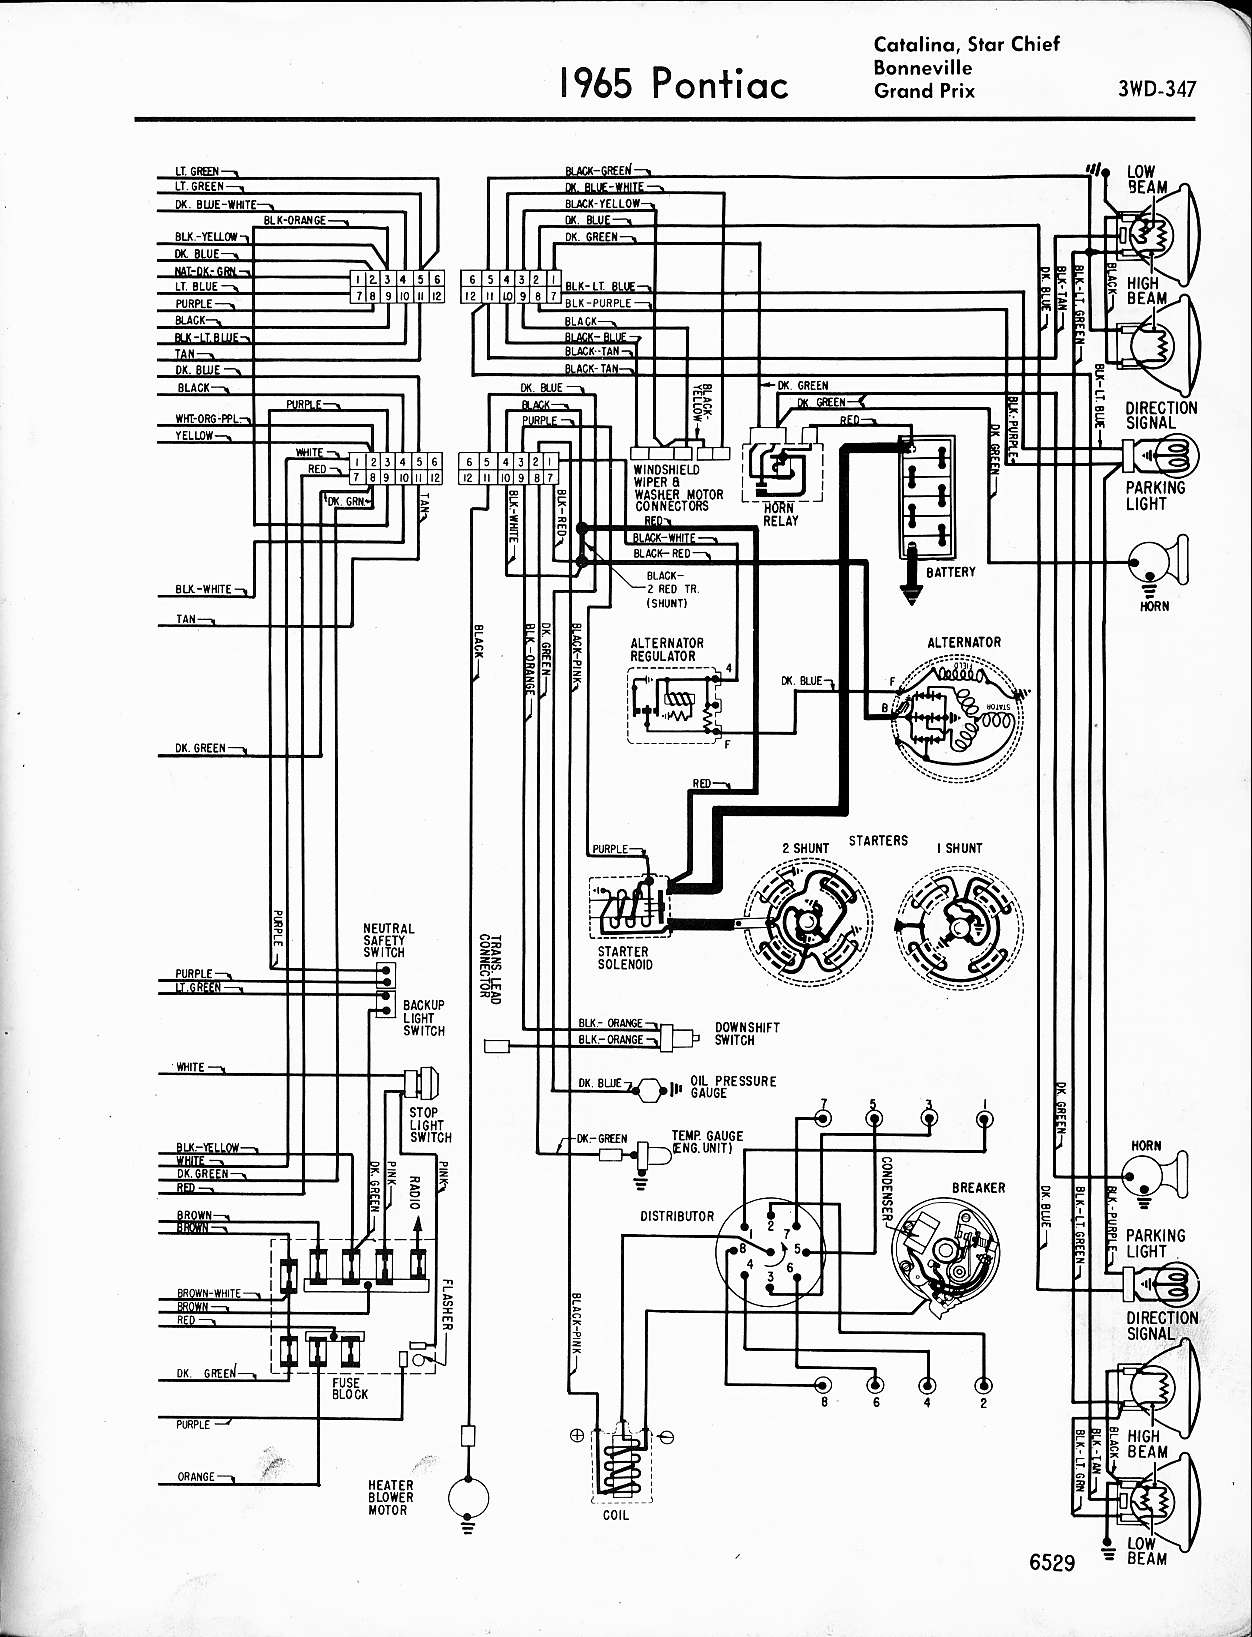 2004 pontiac gto wiring schematic electrical wiring diagrams rh cytrus co 2000 pontiac grand prix wiring schematic 2001 pontiac grand prix wiring schematic